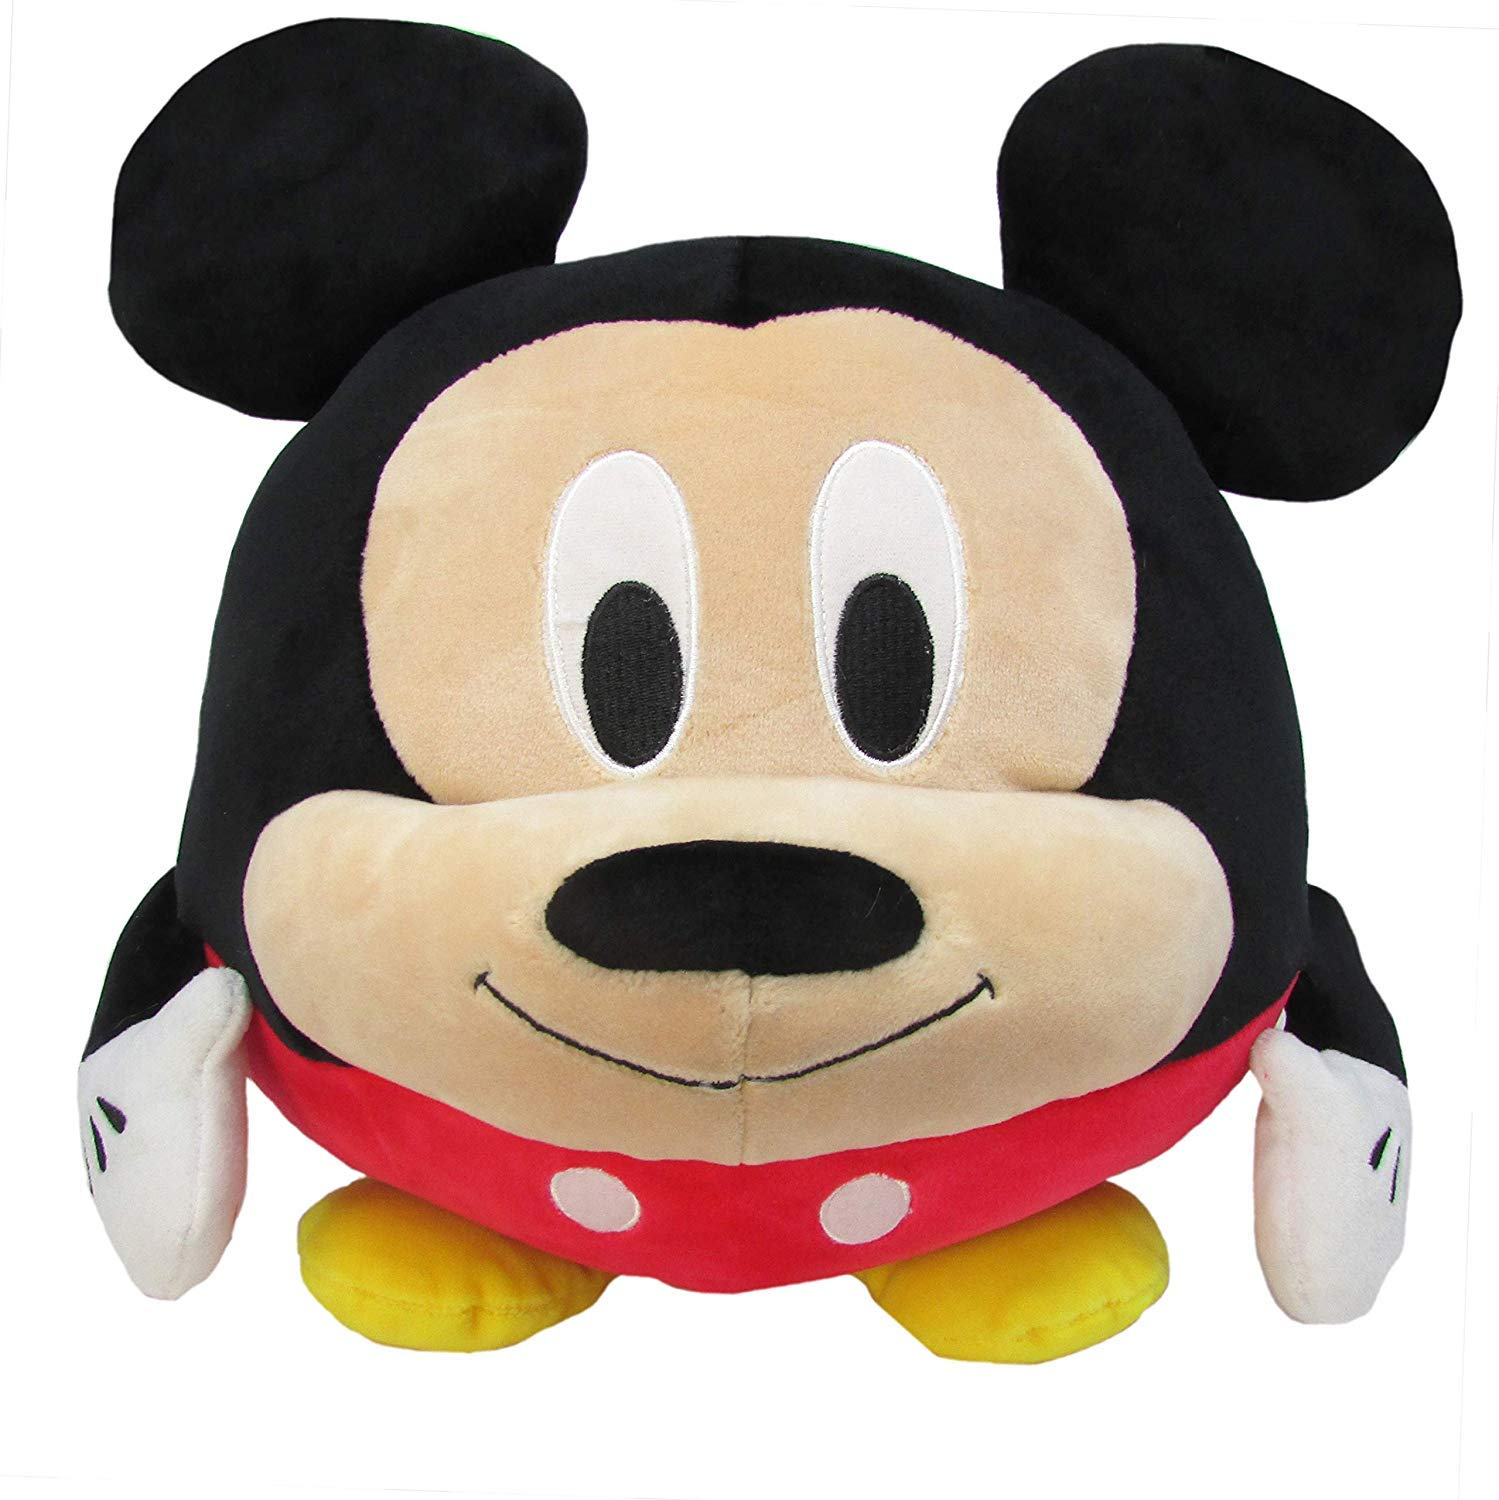 Disney Mickey Mouse Round Cuddle Pal Stuffed Animal Plush Toy, 10 Inches